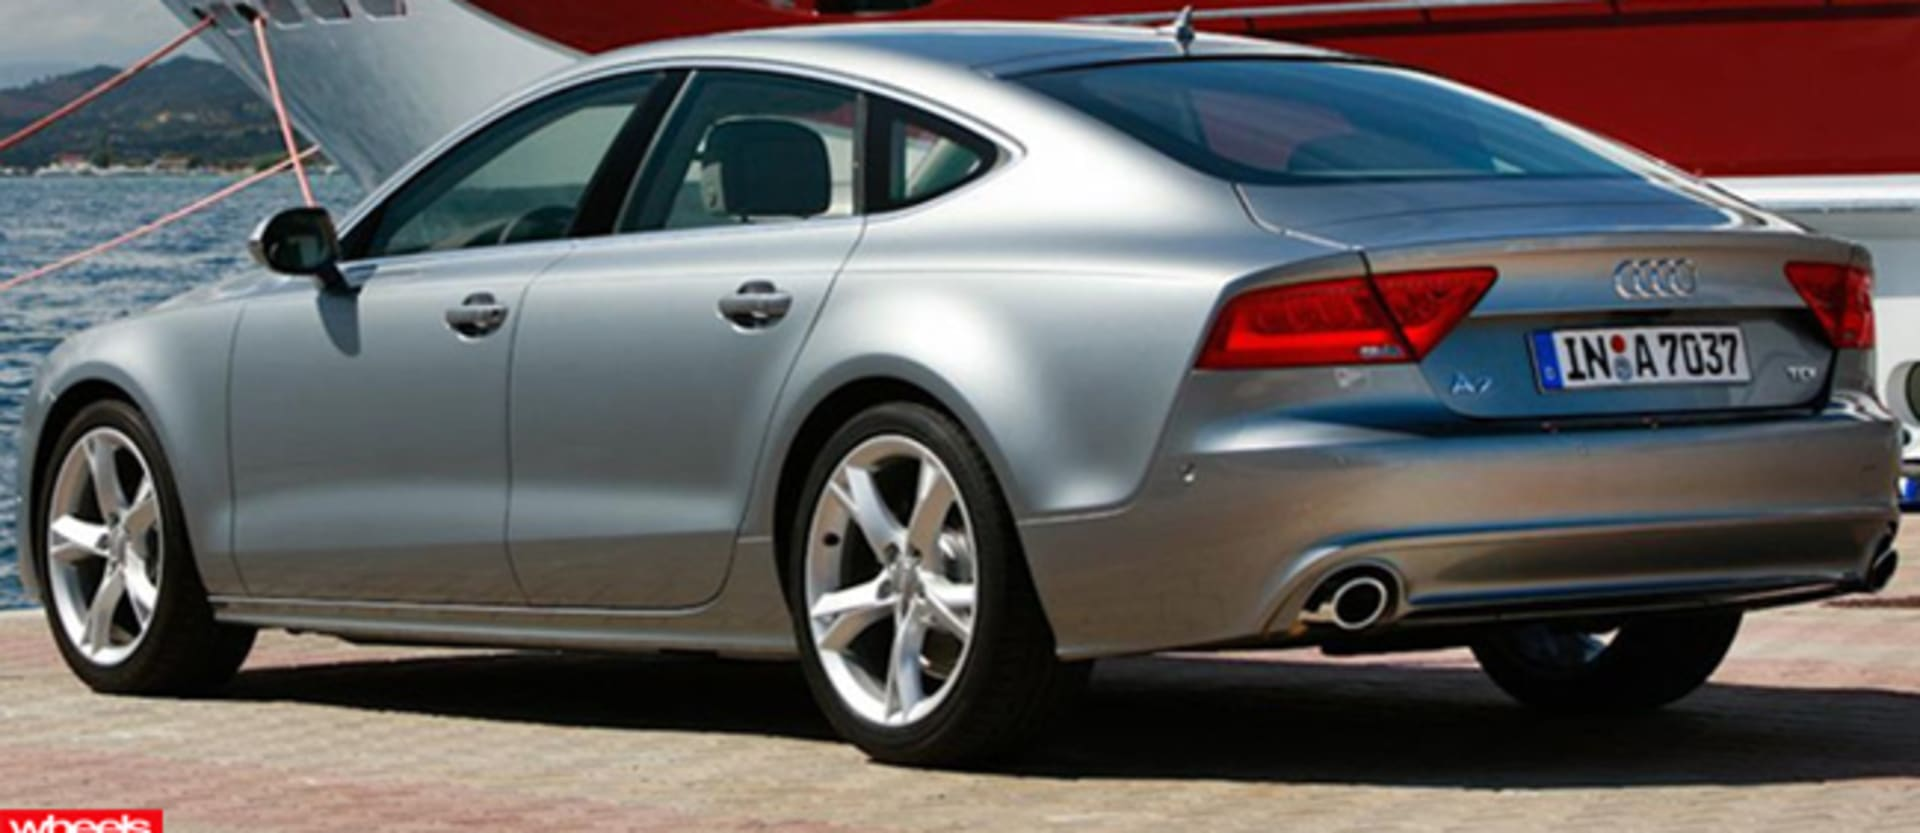 Review: Audi A7 2013, Wheels magazine, new, interior, price, pictures, video